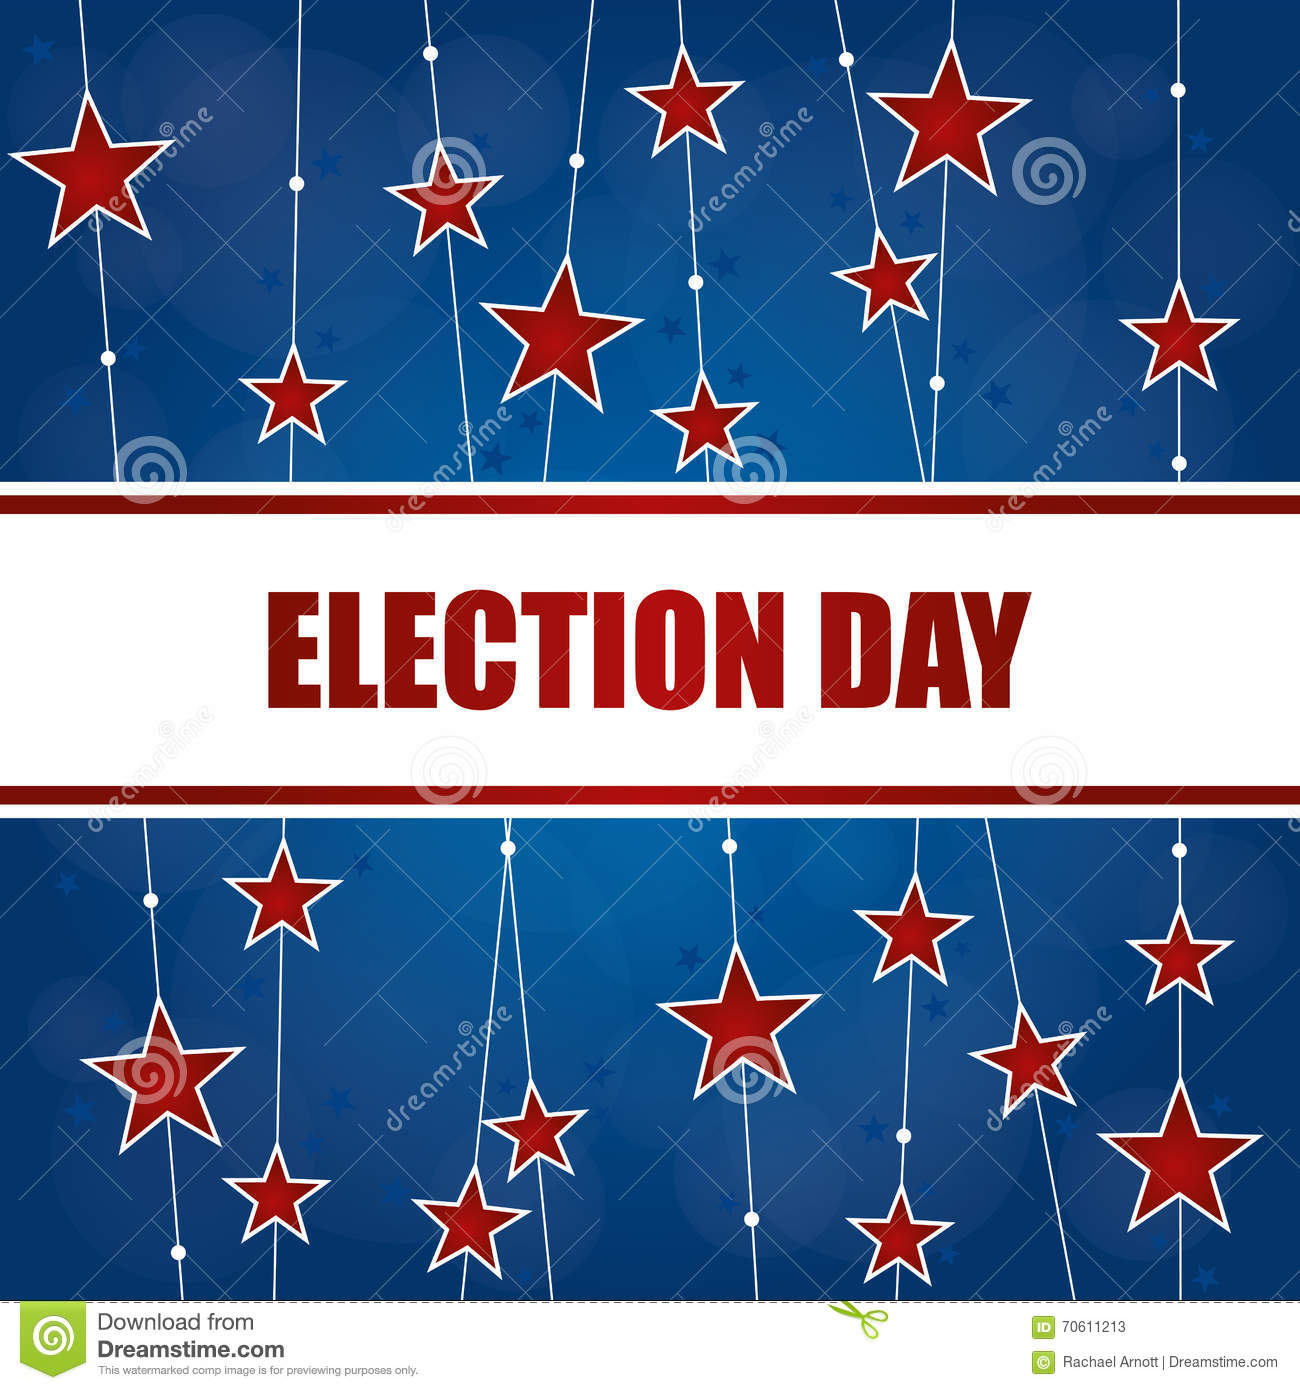 What date is election day in Perth